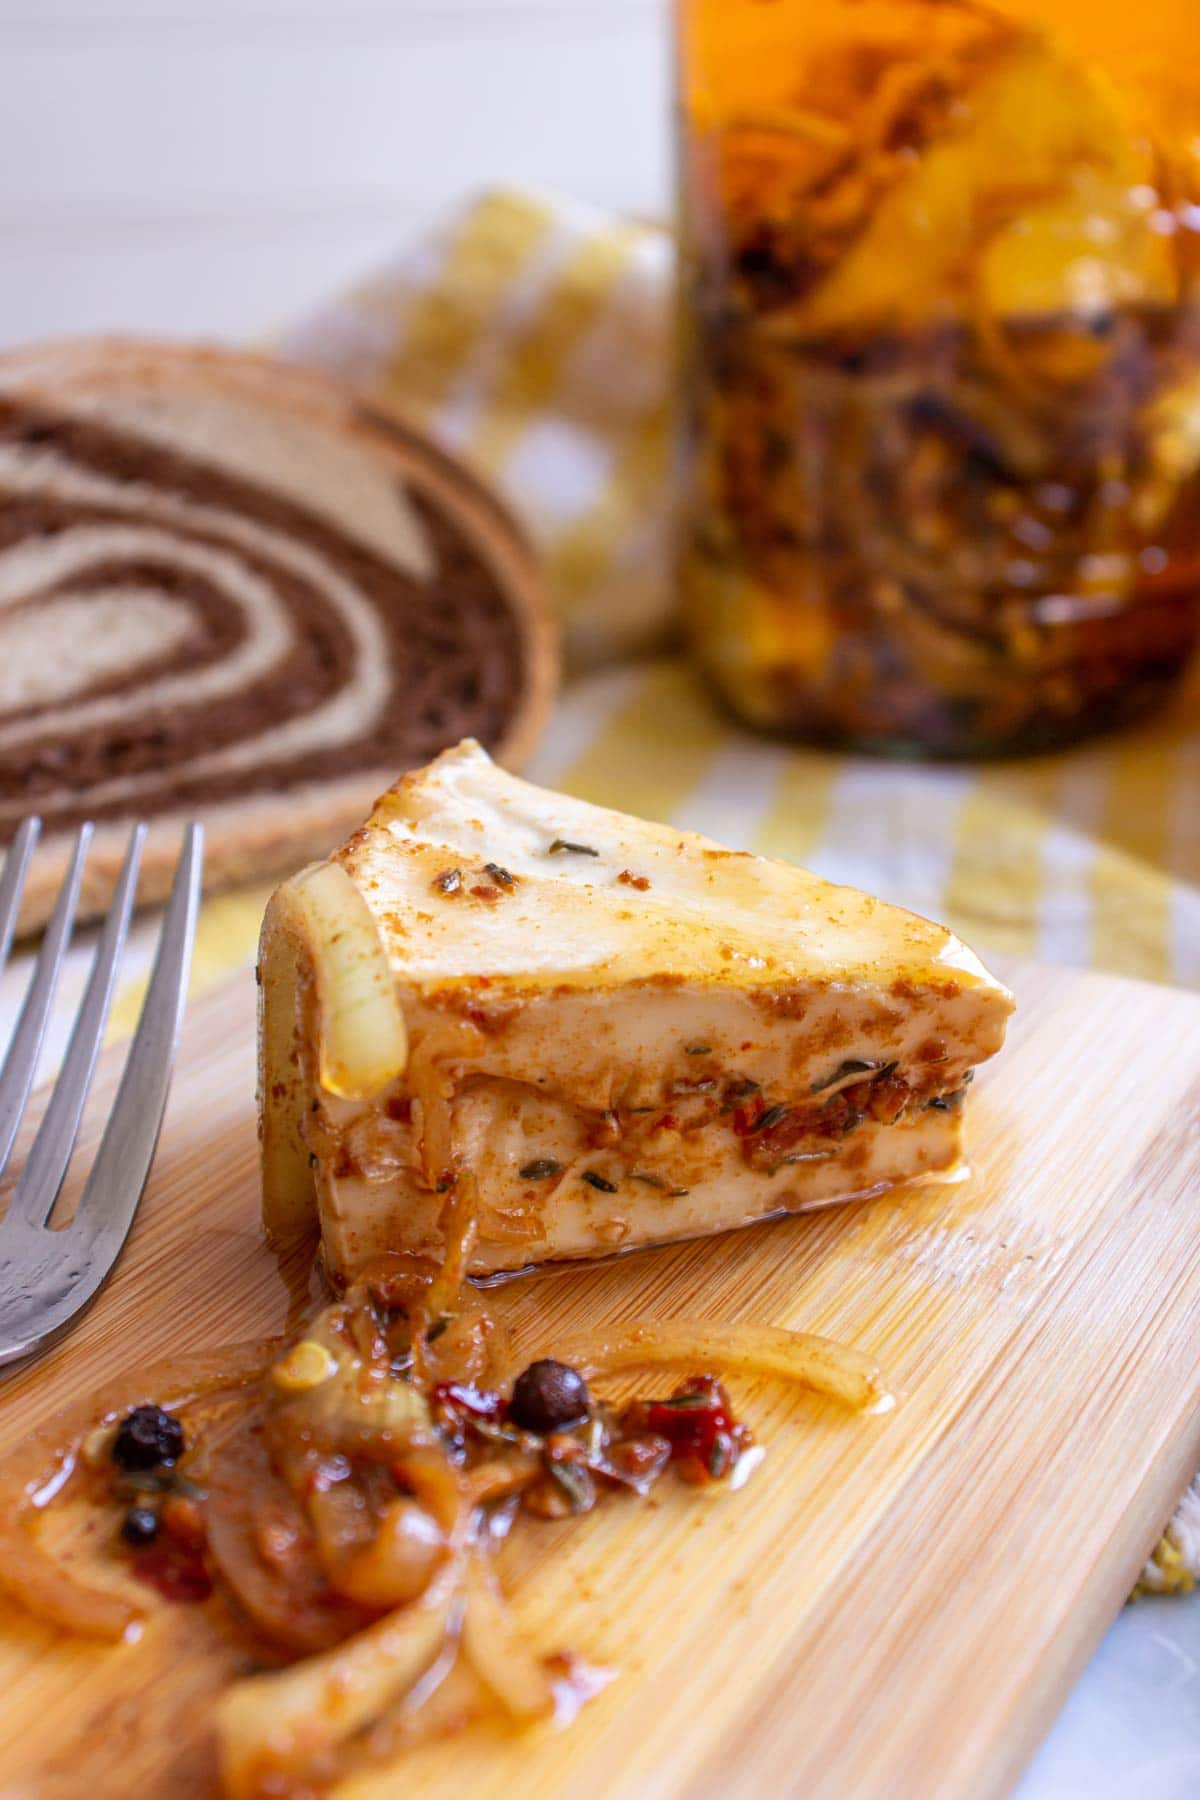 A wedge of Czech marinated cheese with onions and spices on a small wooden board.